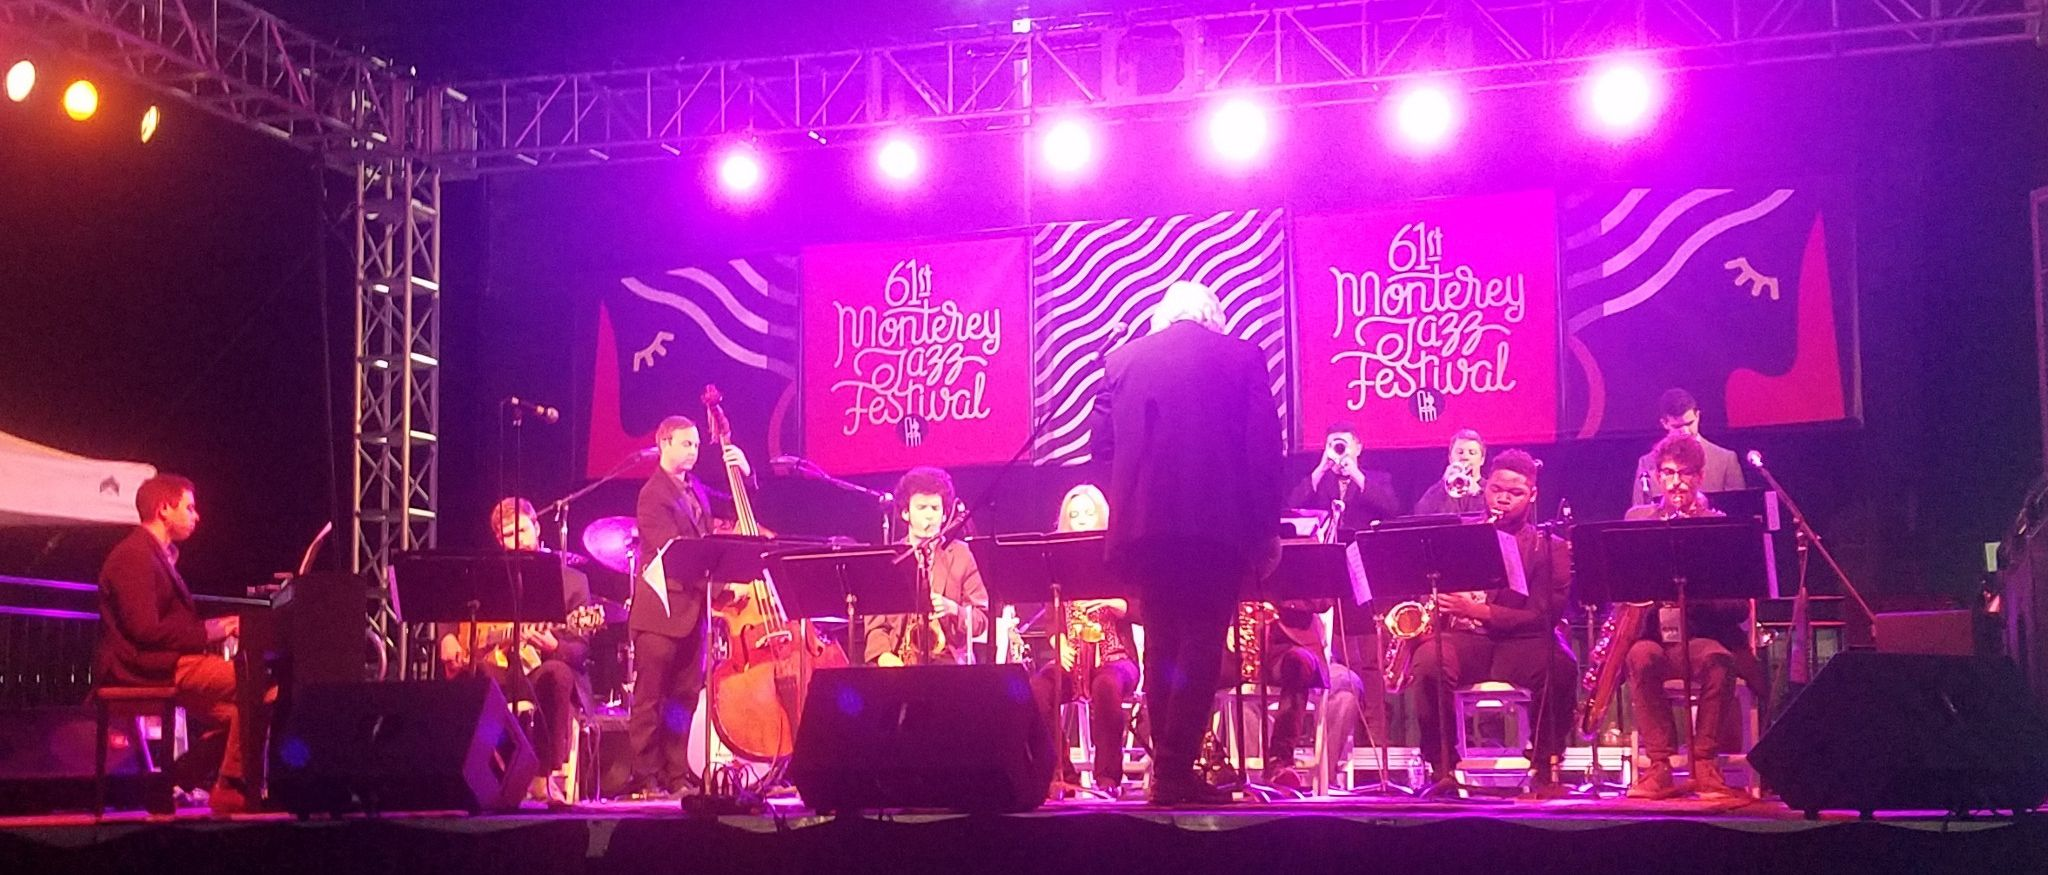 The Lamont Jazz Orchestra performs at the Monterey Jazz Festival